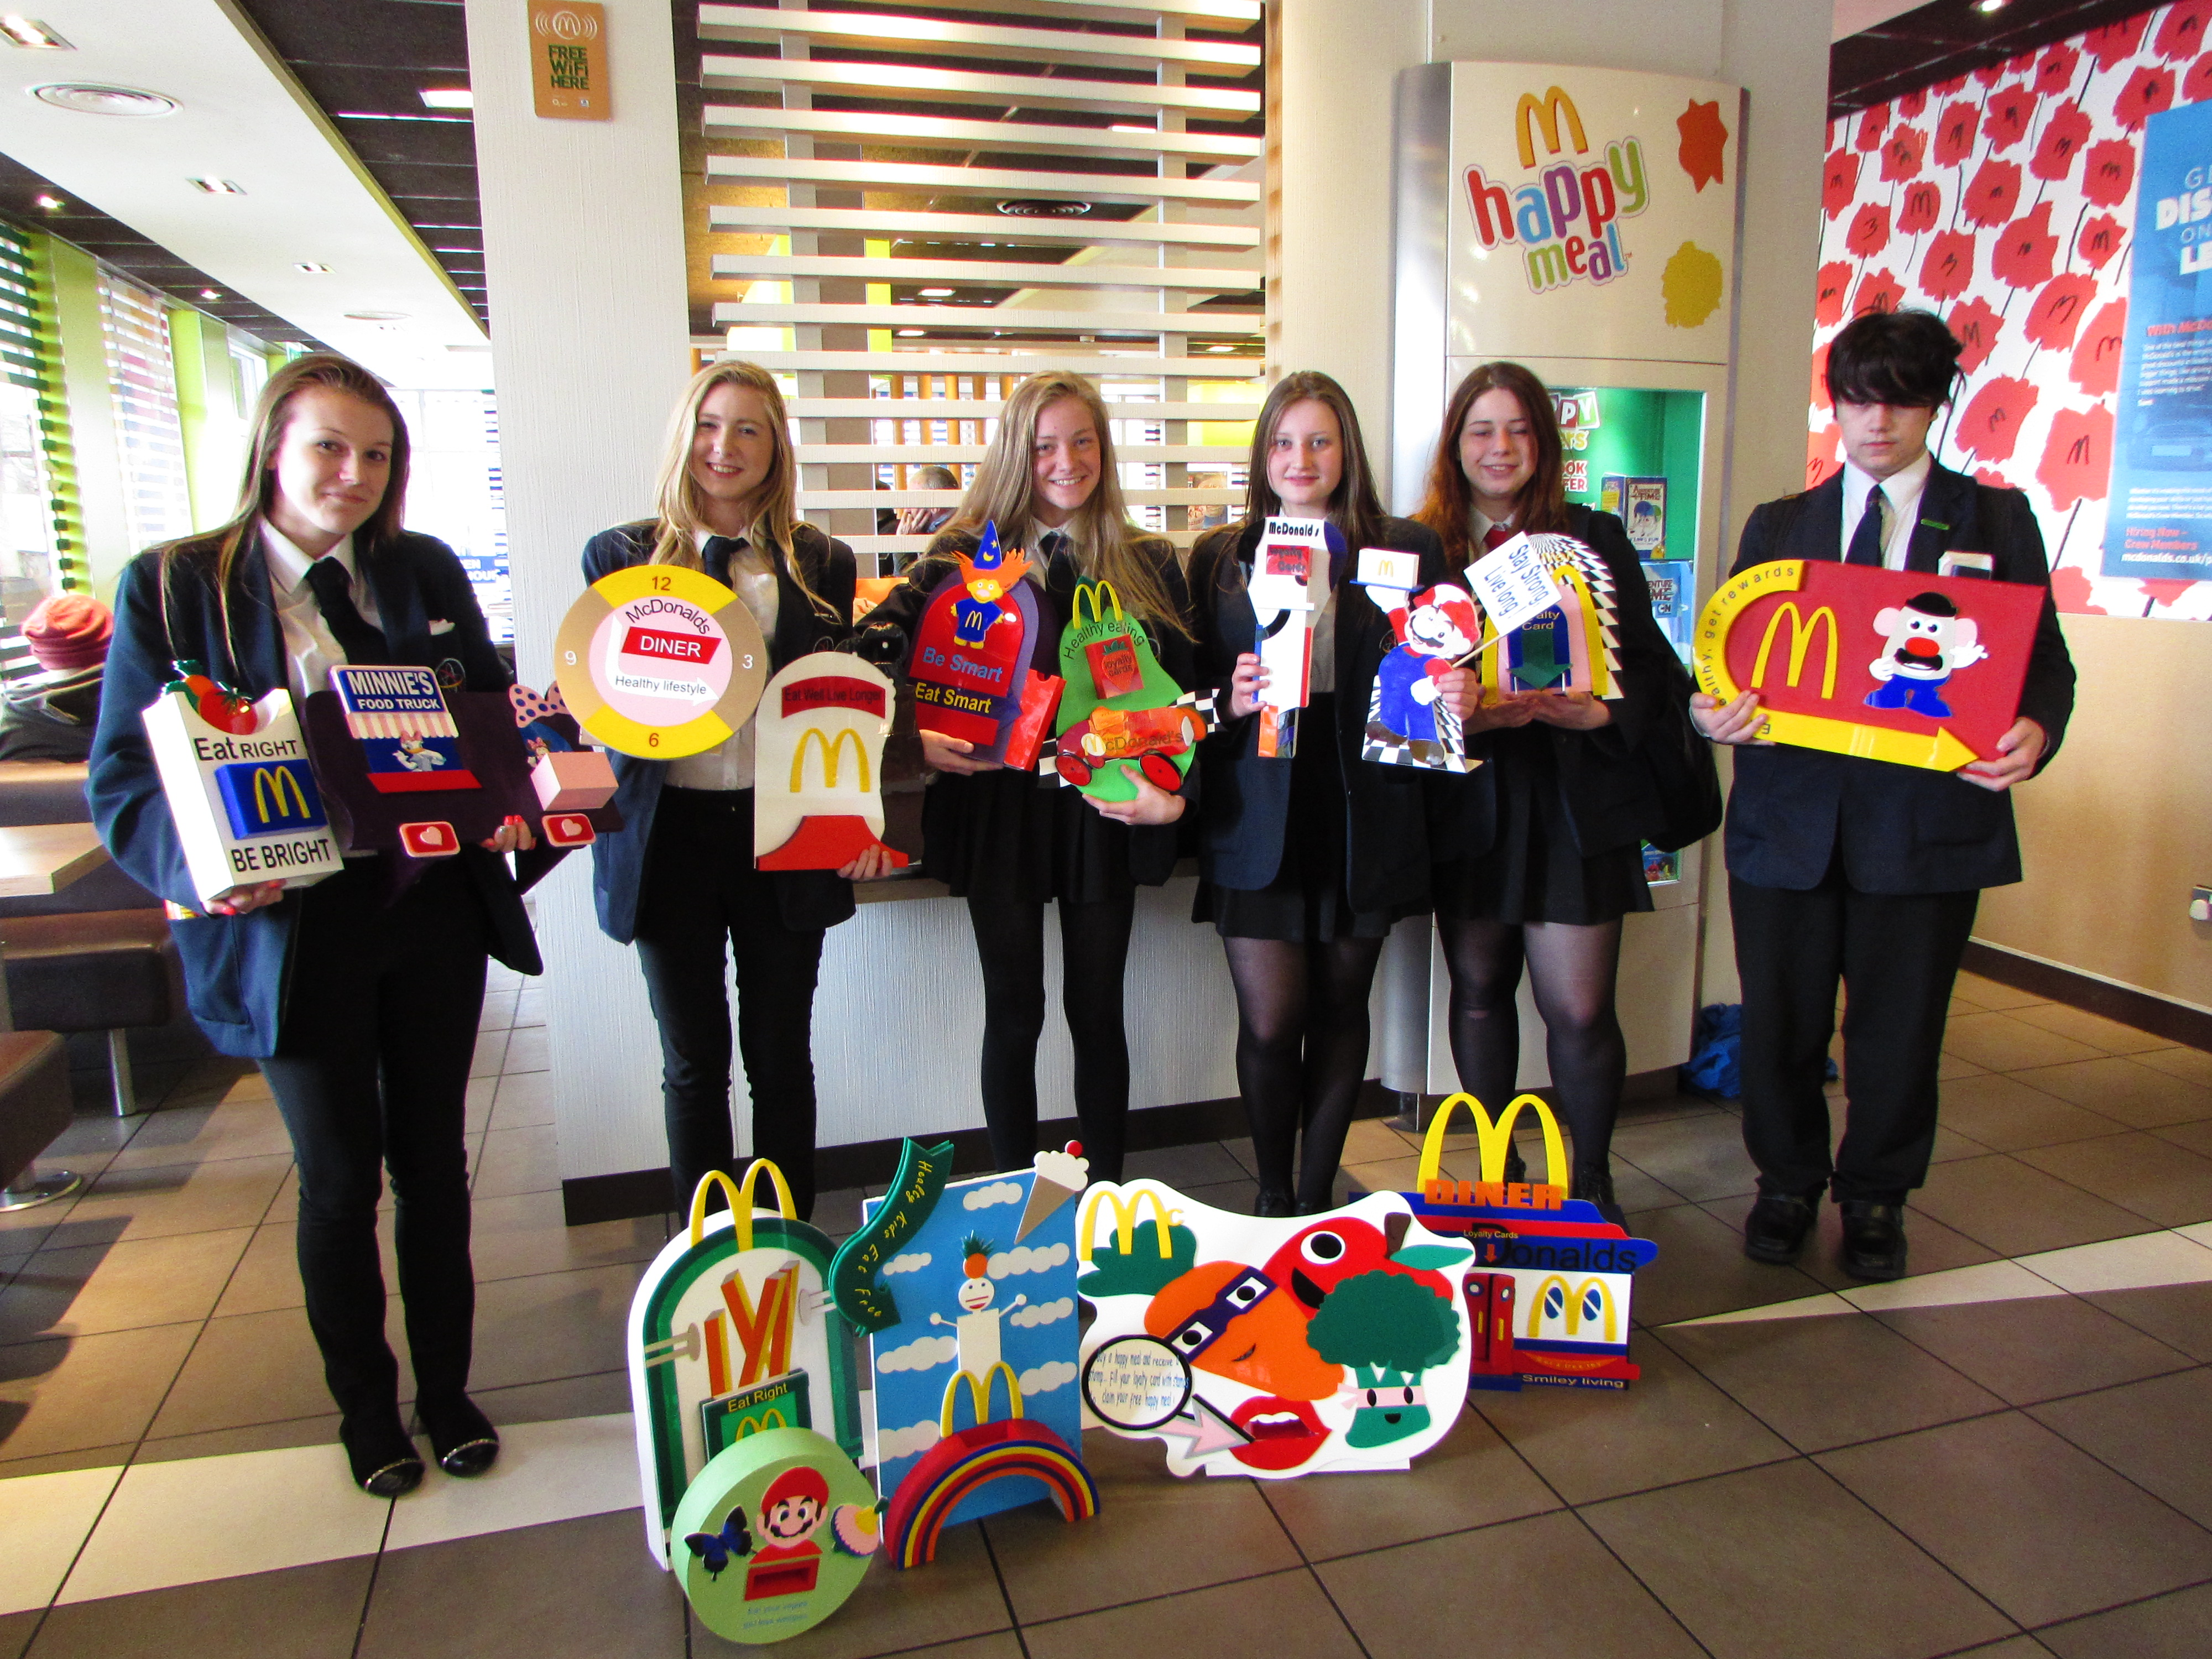 mcdonalds headquarters interested in the work of the